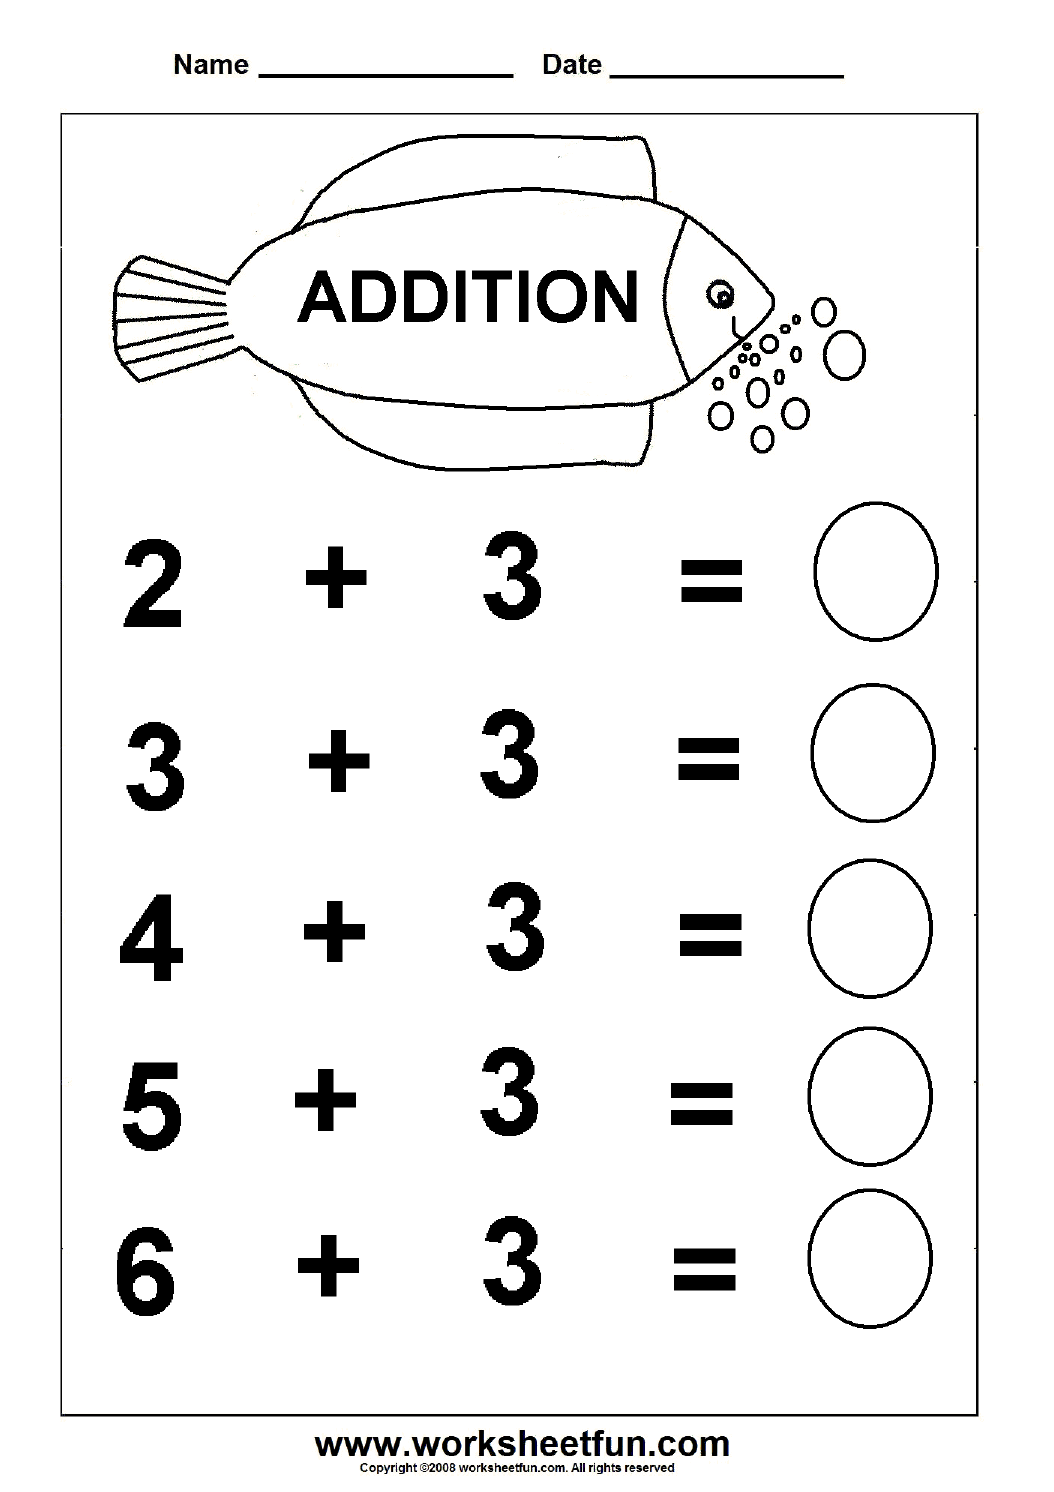 Addition Basic Addition Facts FREE Printable Worksheets – Basic Addition and Subtraction Worksheets